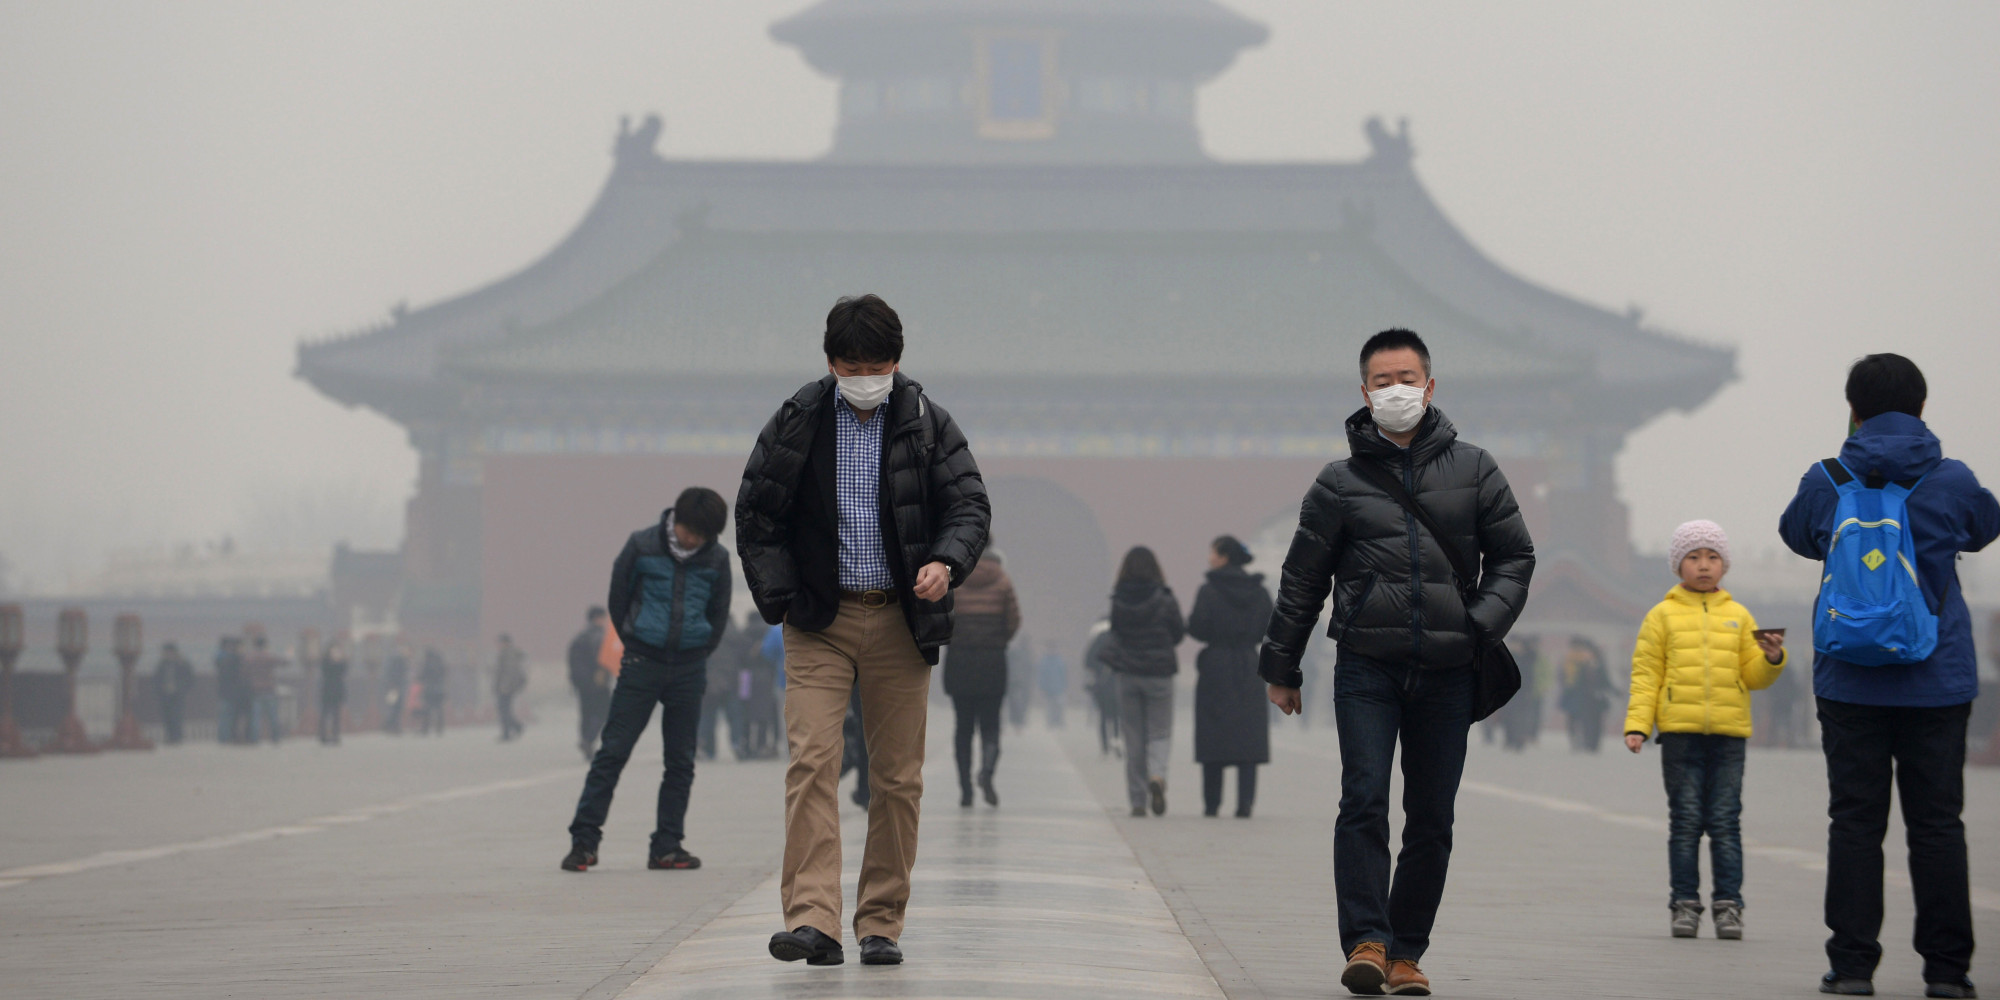 air pollution in china China and india each had 11 million air pollution-related deaths in 2015, accounting for half of the world's total air pollution deaths that year chinese leaders face the difficult choice of prioritizing either economic growth or environmental and social welfare.